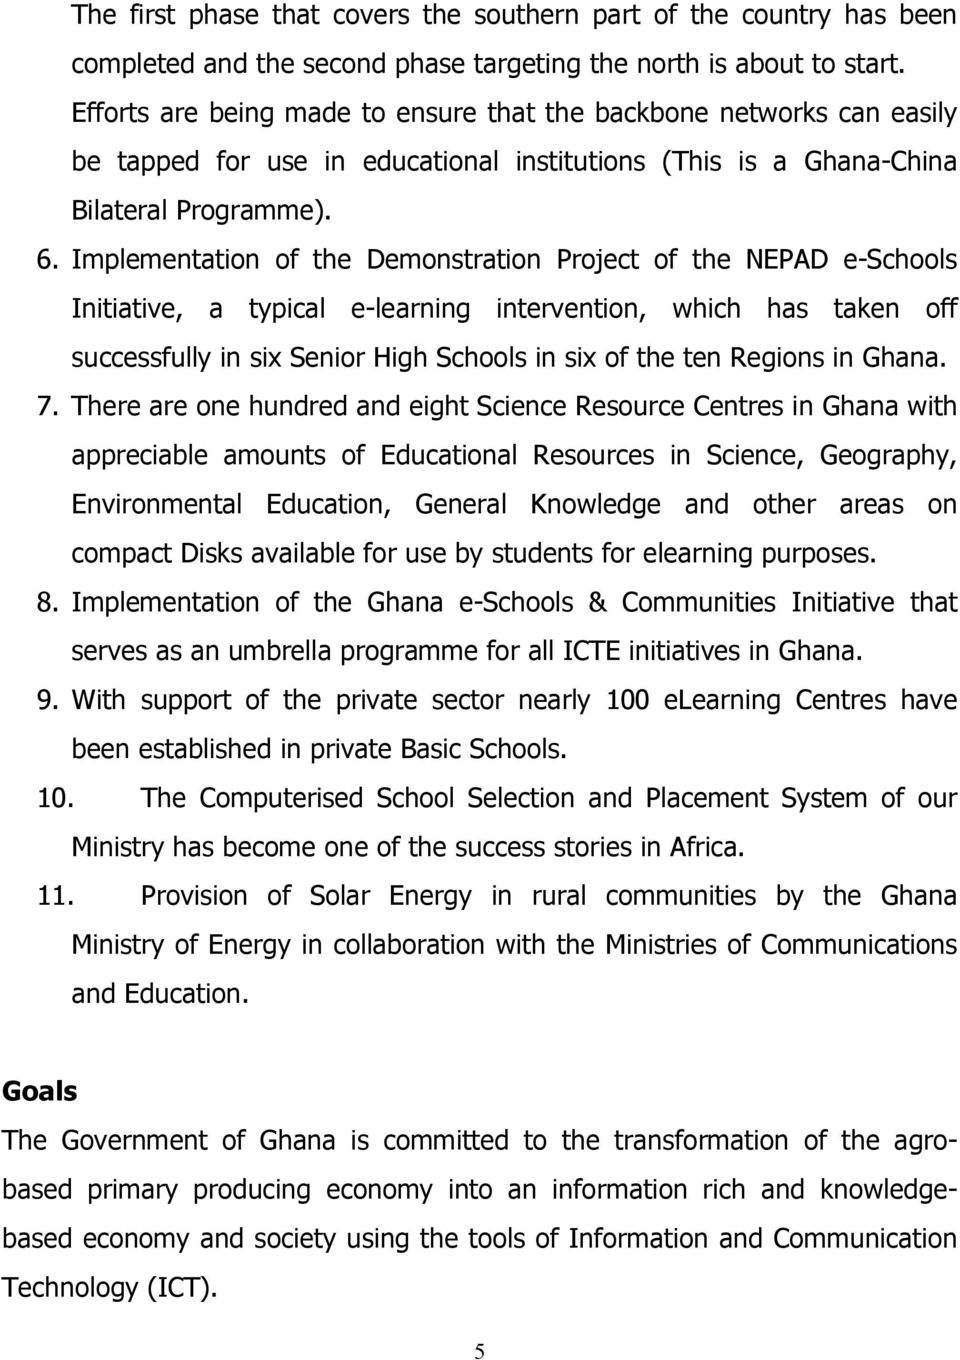 Implementation of the Demonstration Project of the NEPAD e-schools Initiative, a typical e-learning intervention, which has taken off successfully in six Senior High Schools in six of the ten Regions